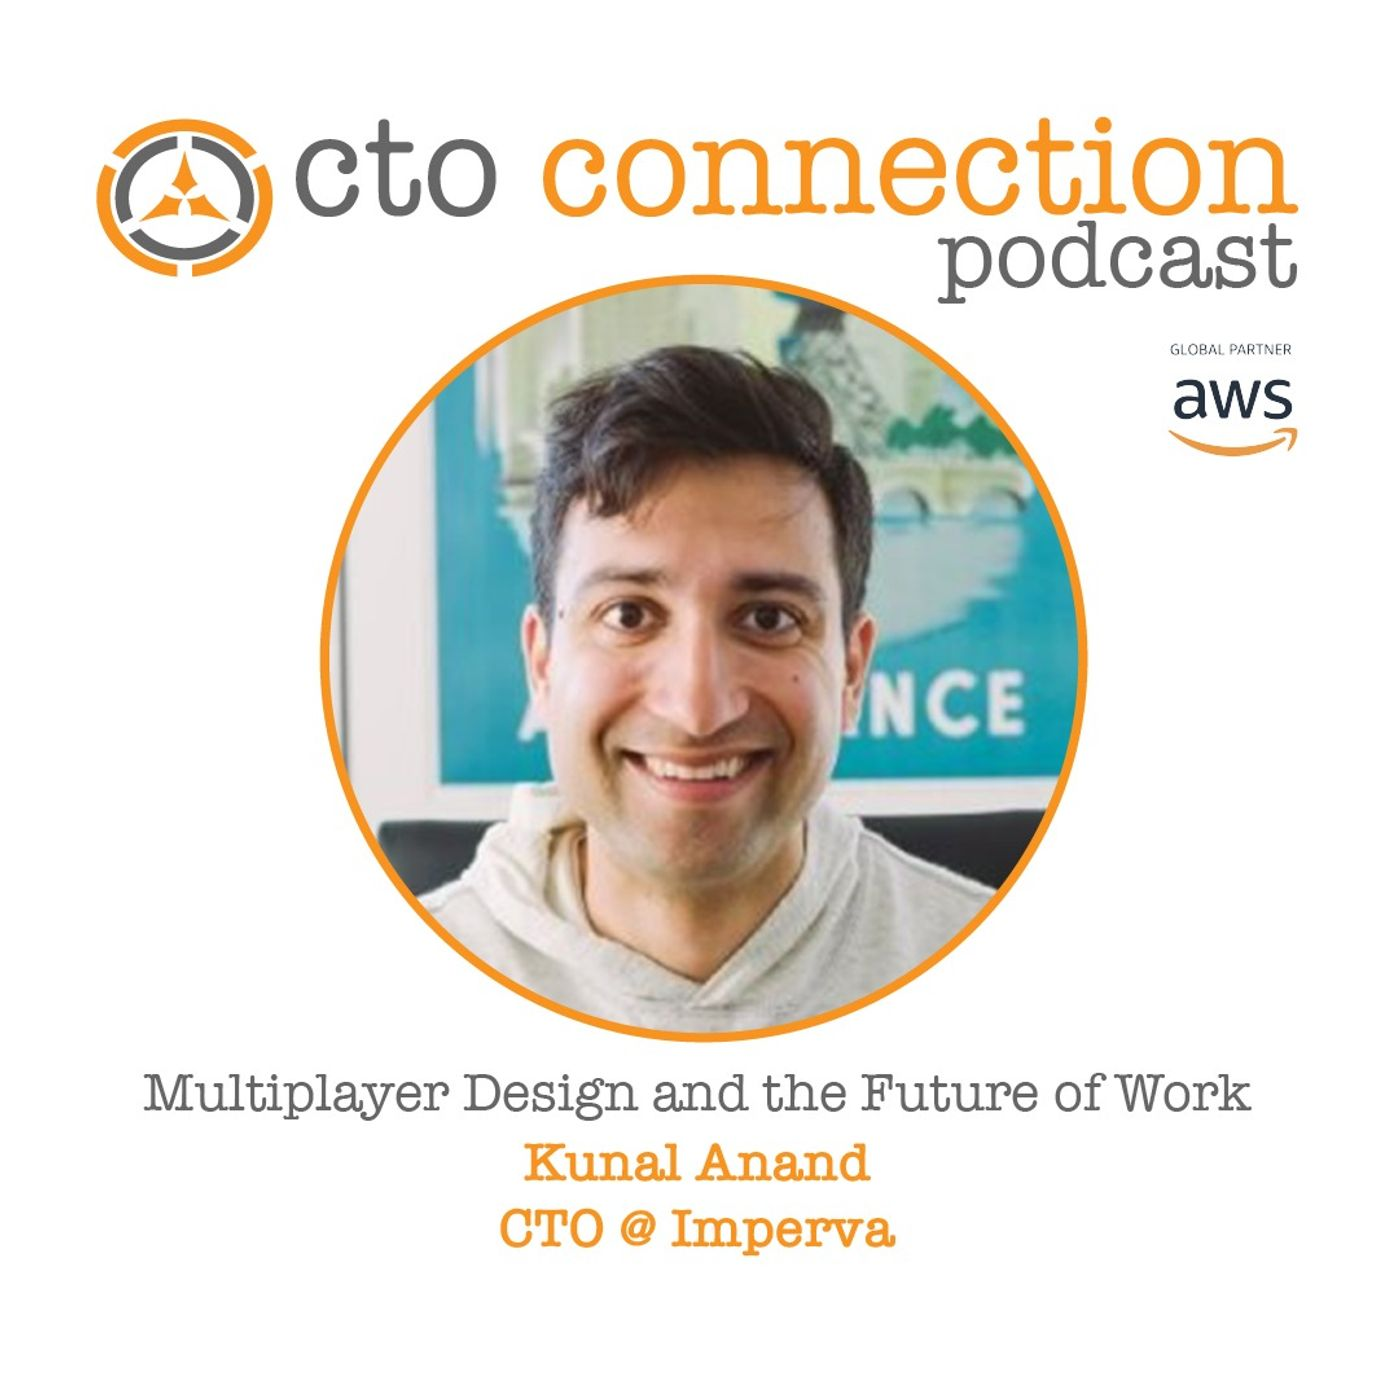 Multiplayer Design and the Future of Work with Kunal Anand